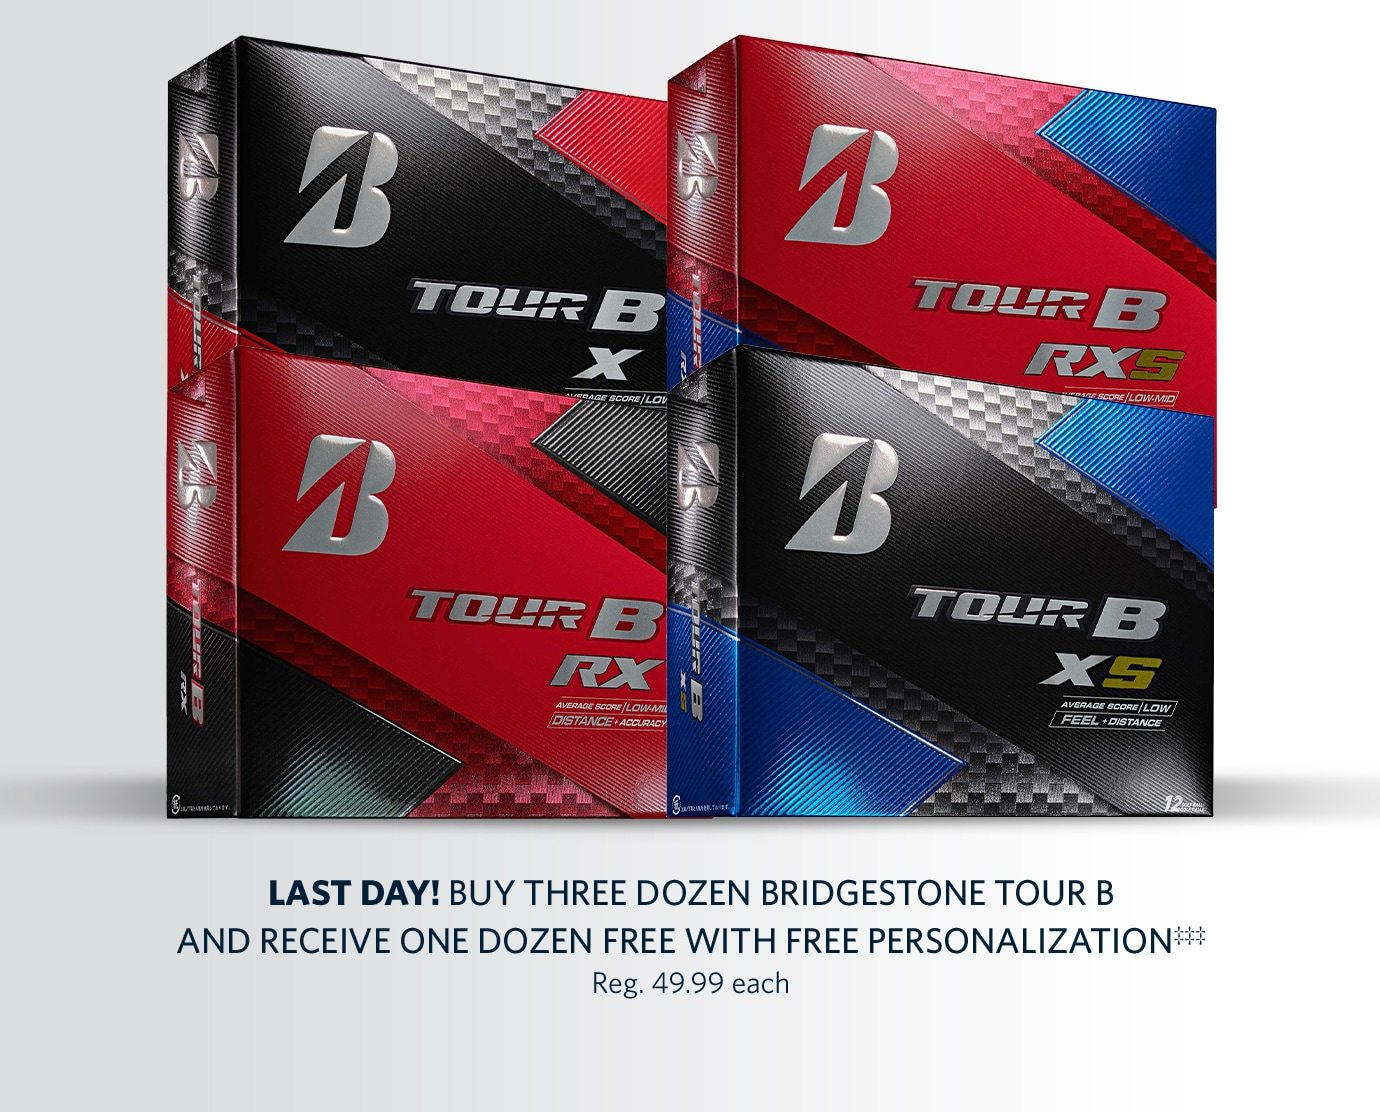 Last Day! Buy Three Dozen Bridgestone Tour B and Receive One Dozen Free with Free Personalization‡‡‡ | Reg. 49.99 each